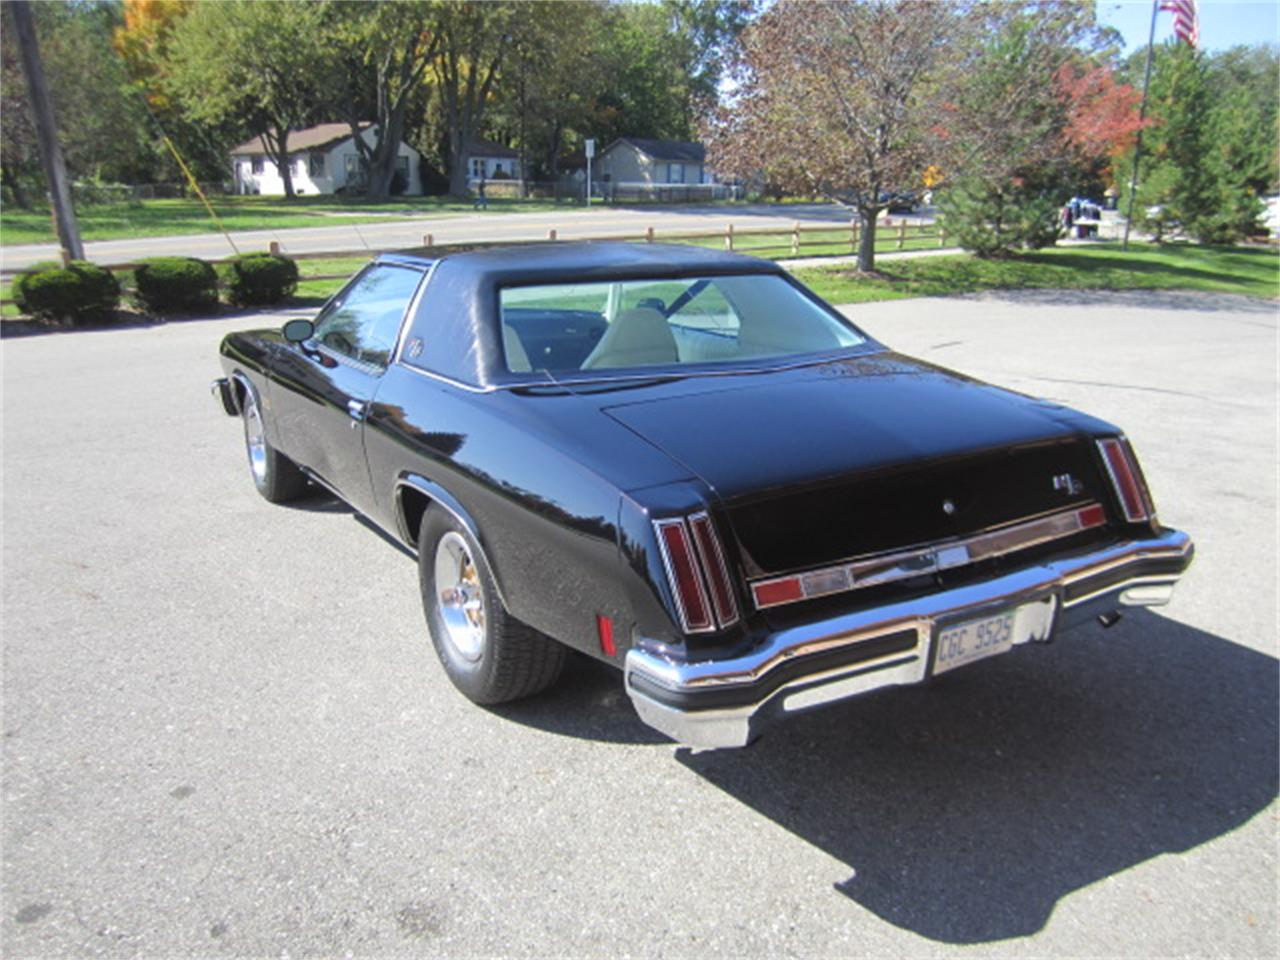 Large Picture of 1975 Oldsmobile Hurst located in Michigan - $19,950.00 Offered by a Private Seller - MXYR